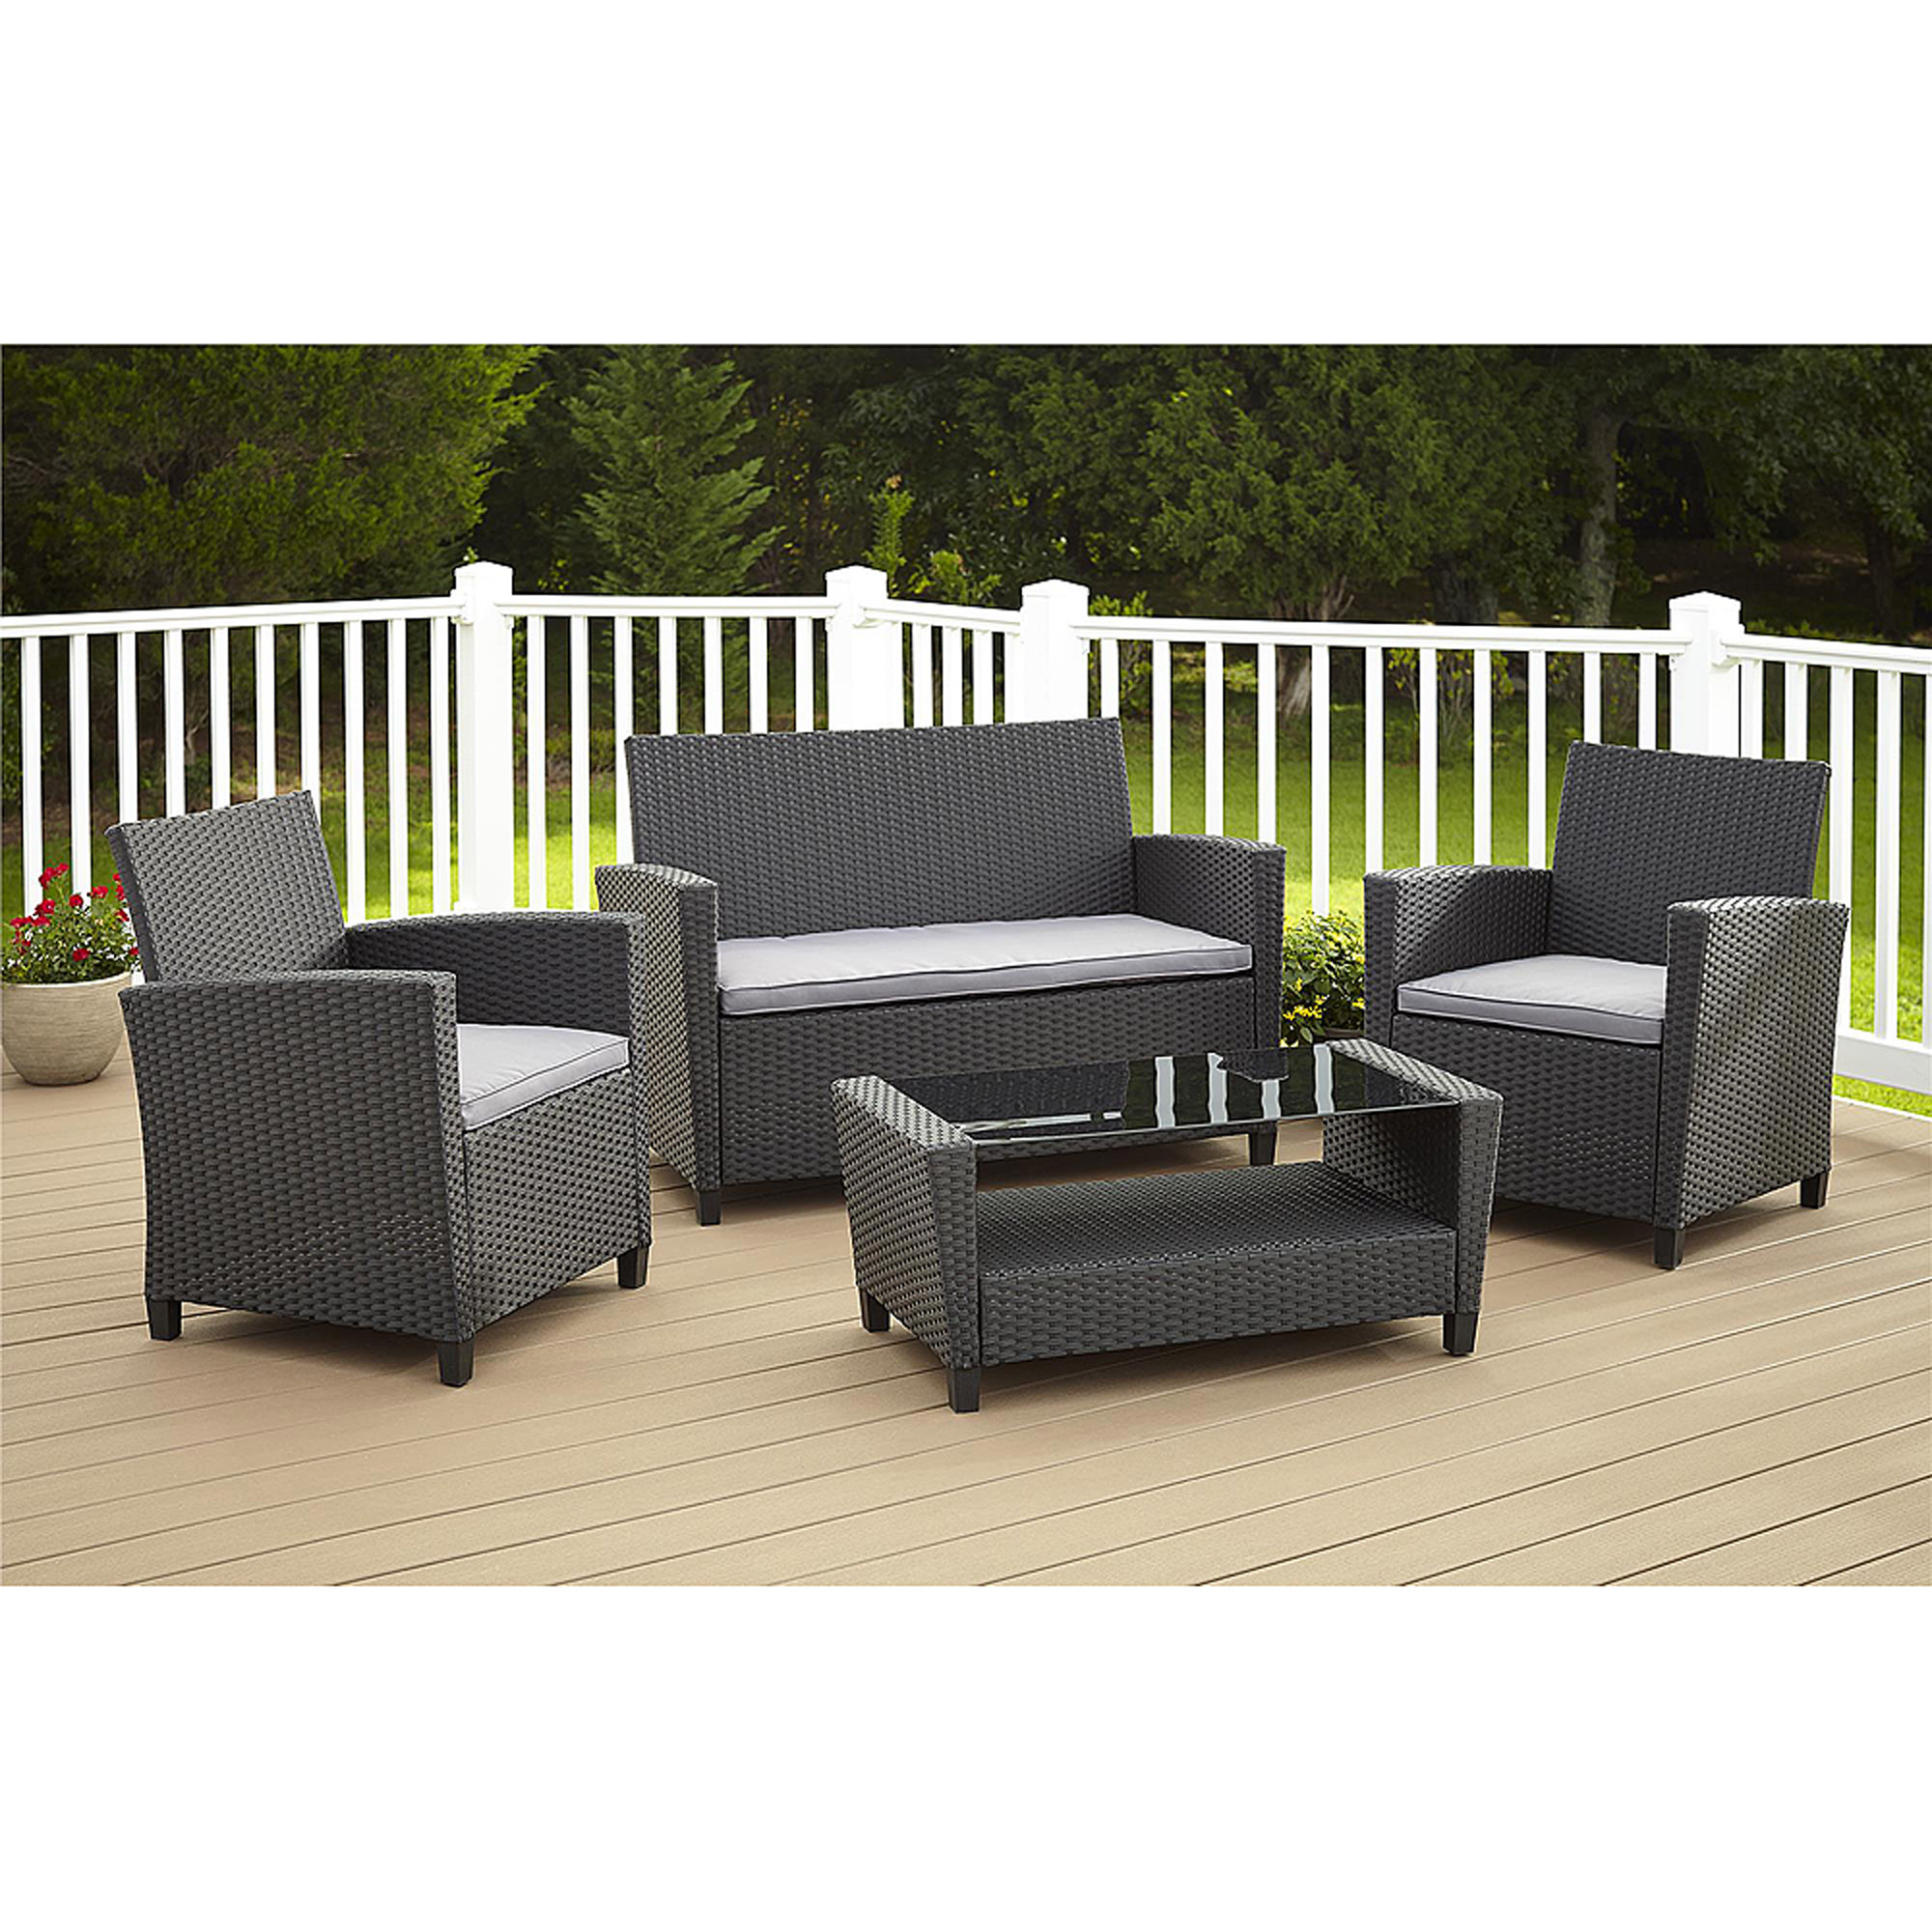 Cosco Outdoor Malmo 4 Piece Resin Wicker Patio Conversation Set